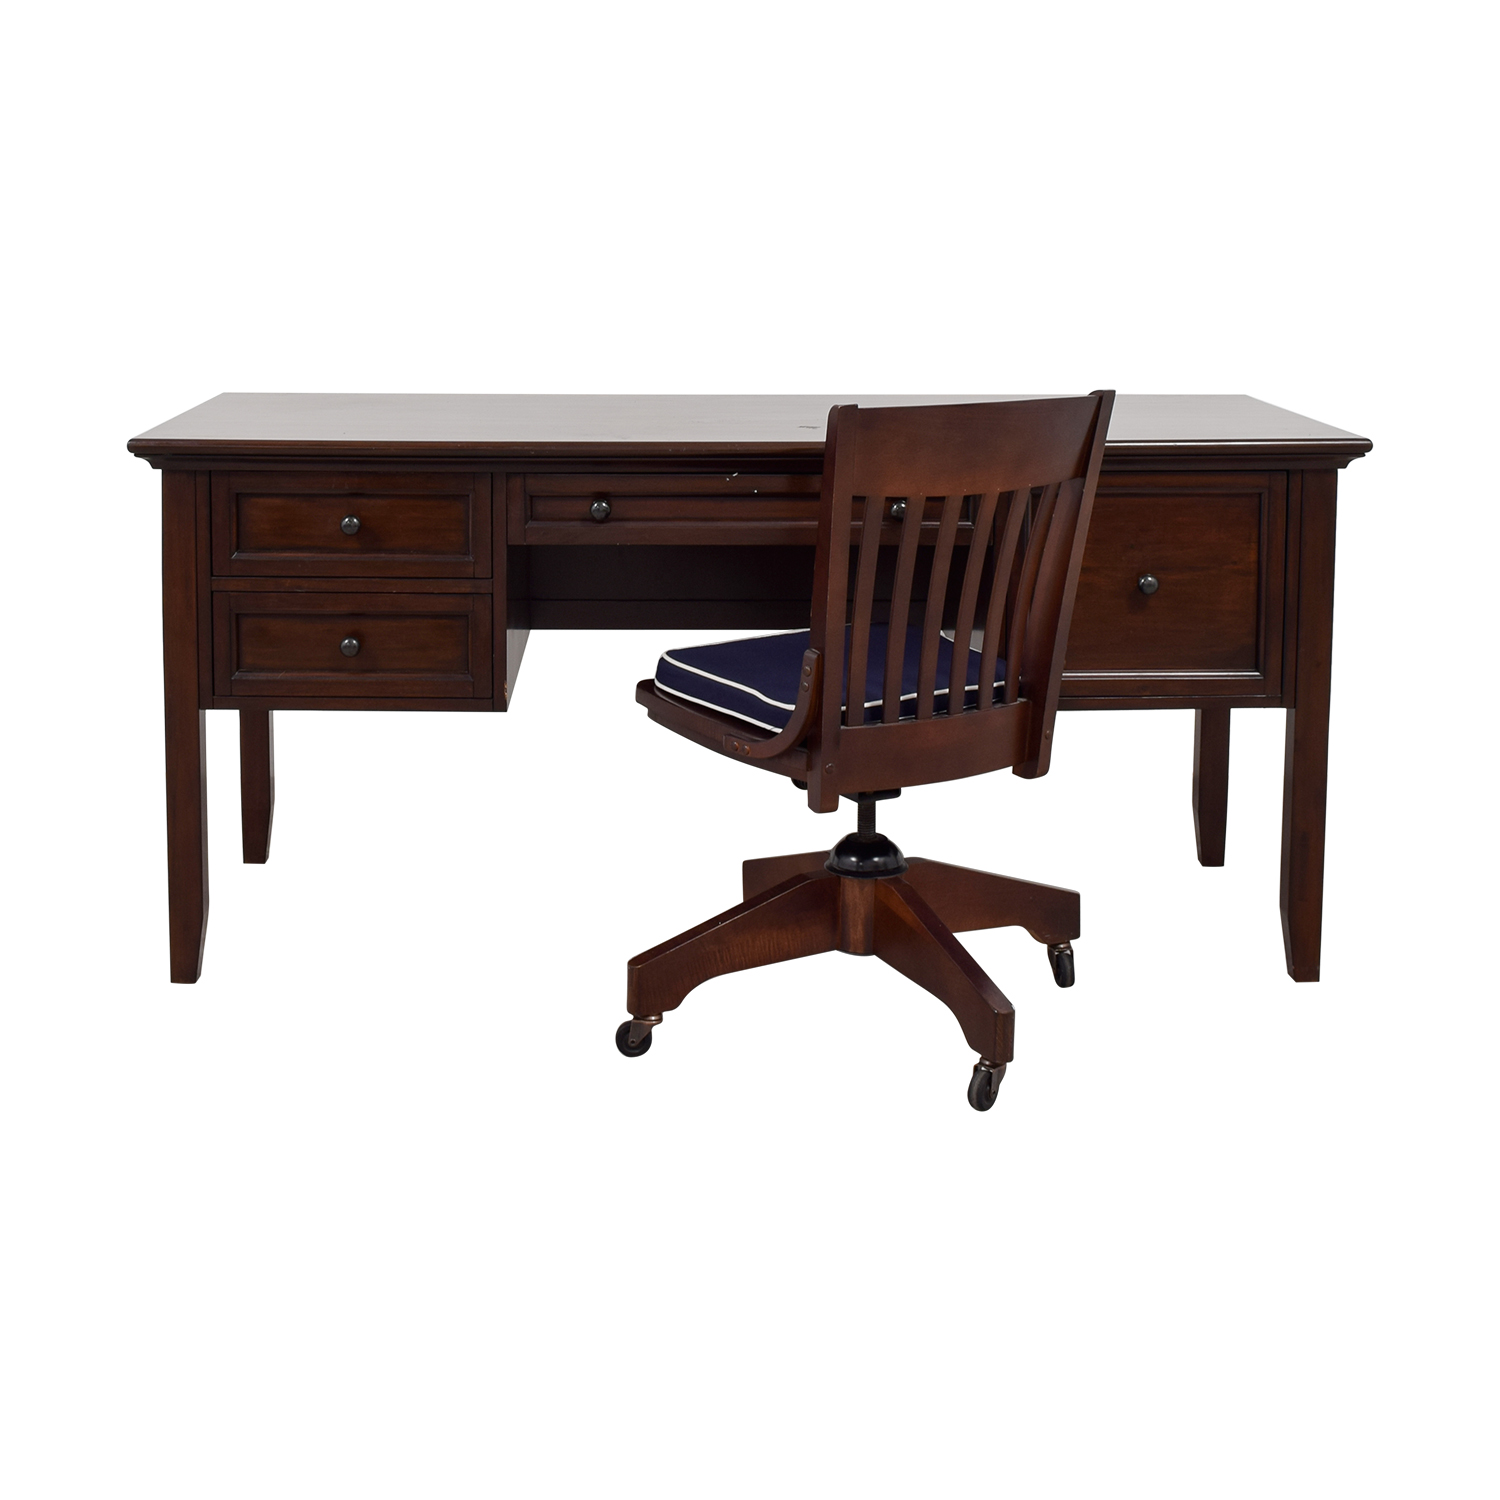 buy Pottery Barn Four-Drawer Desk and Chair Pottery Barn Home Office Desks